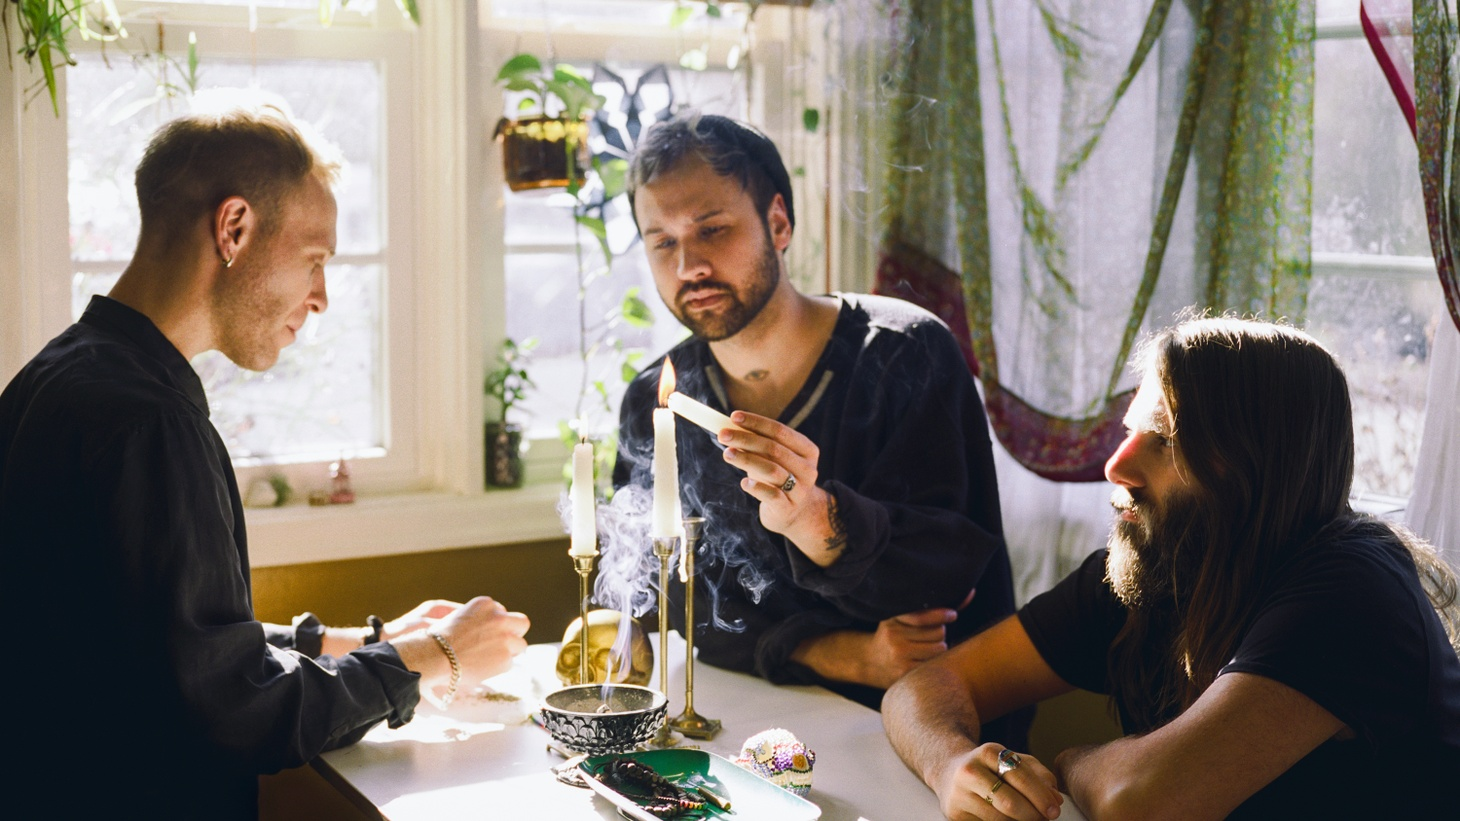 Steeped in the roots of modern psychedelia, Unknown Mortal Orchestra focus on the complications that love brings on their new single.